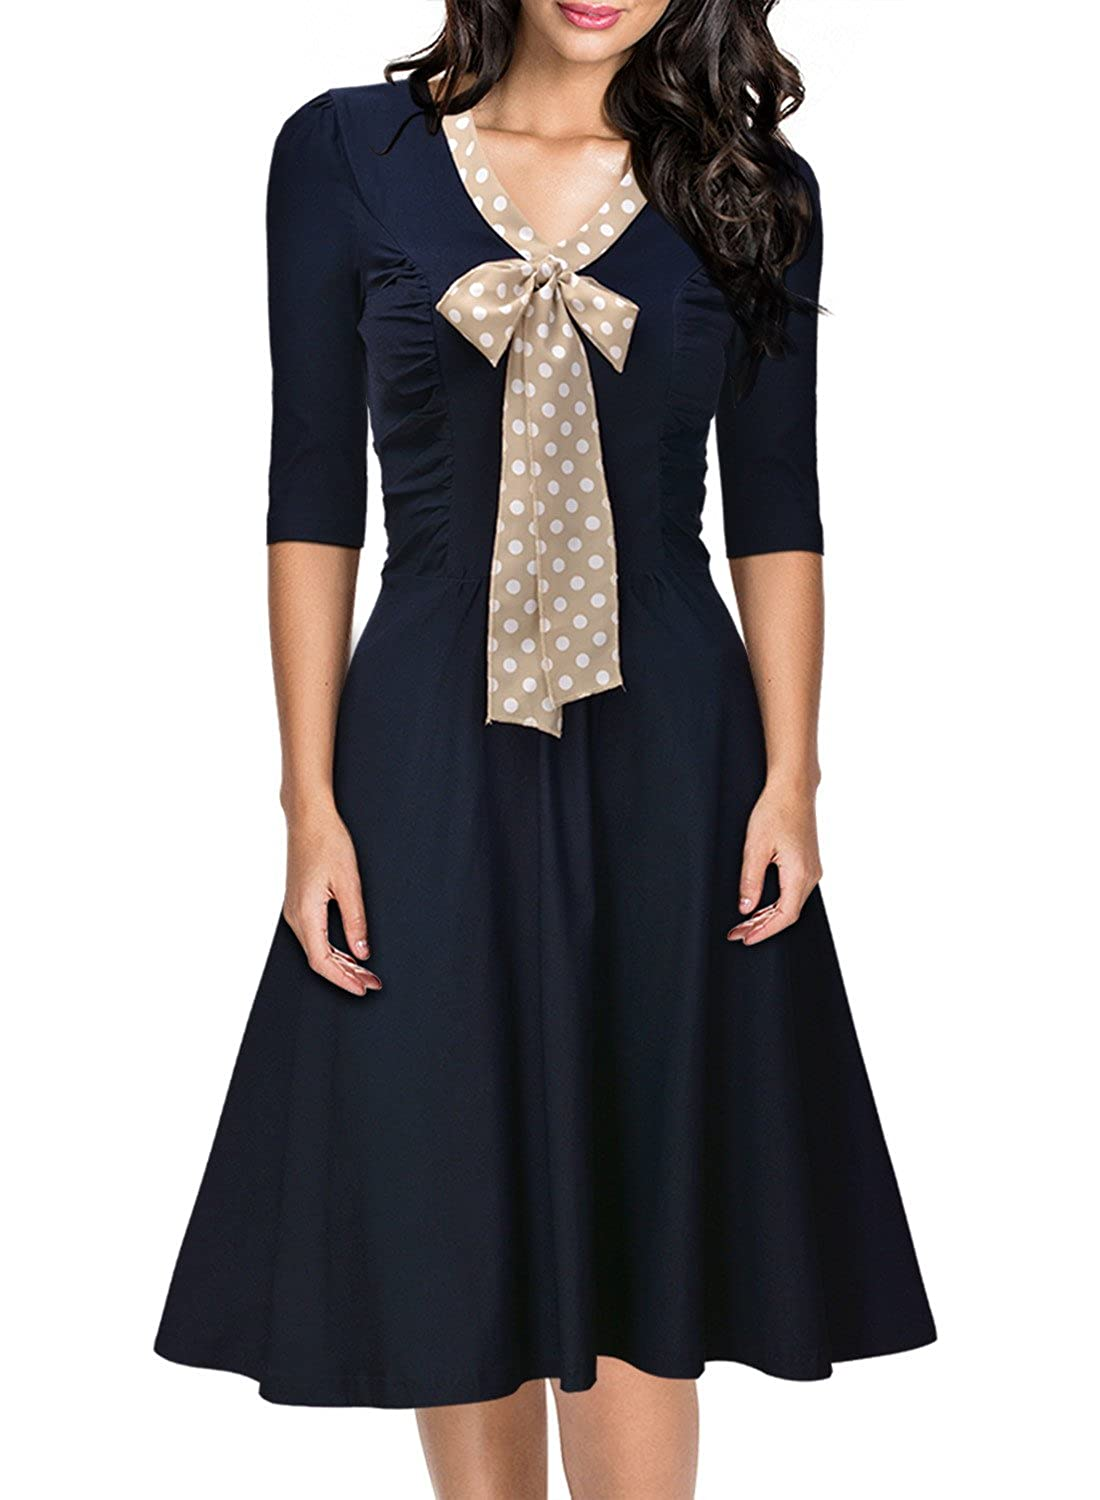 Miusol Women's Vintage 3/4 Sleeve Navy Style Belted Retro Evening Dress